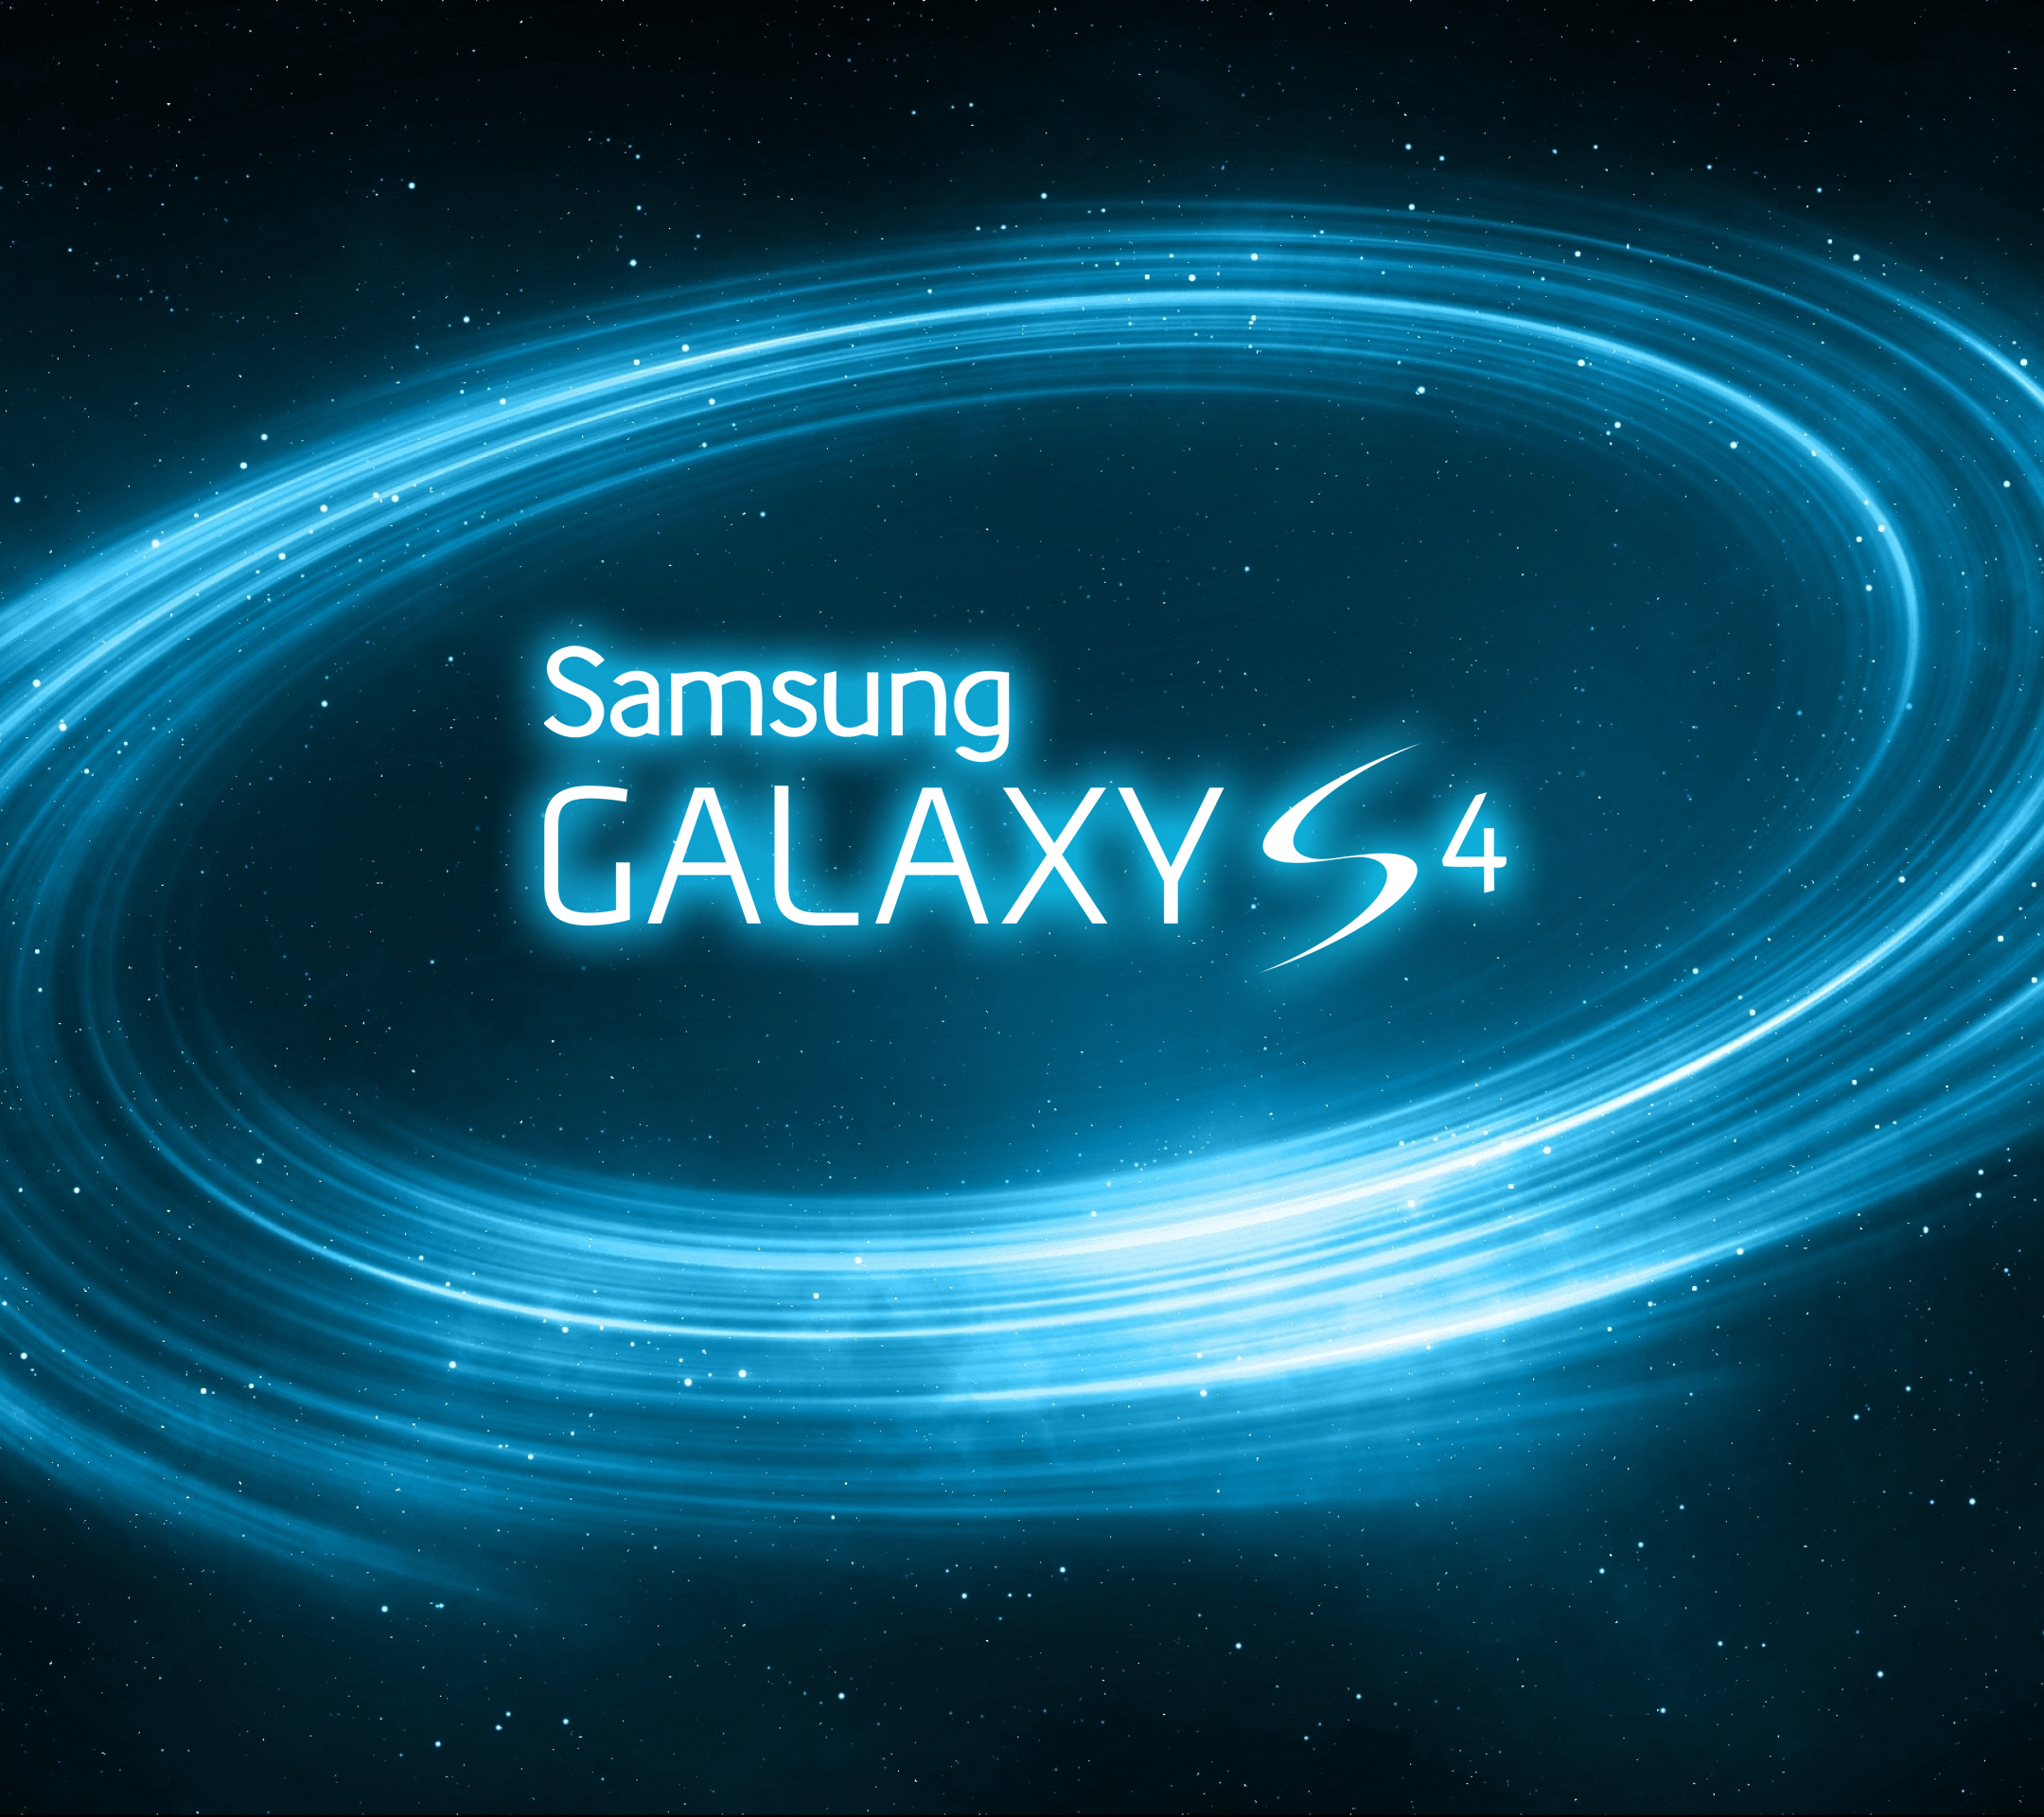 Samsung Galaxy Y Hd Love Wallpaper : Samsung Galaxy S4 Wallpapers & Pictures Hd Wallpapers